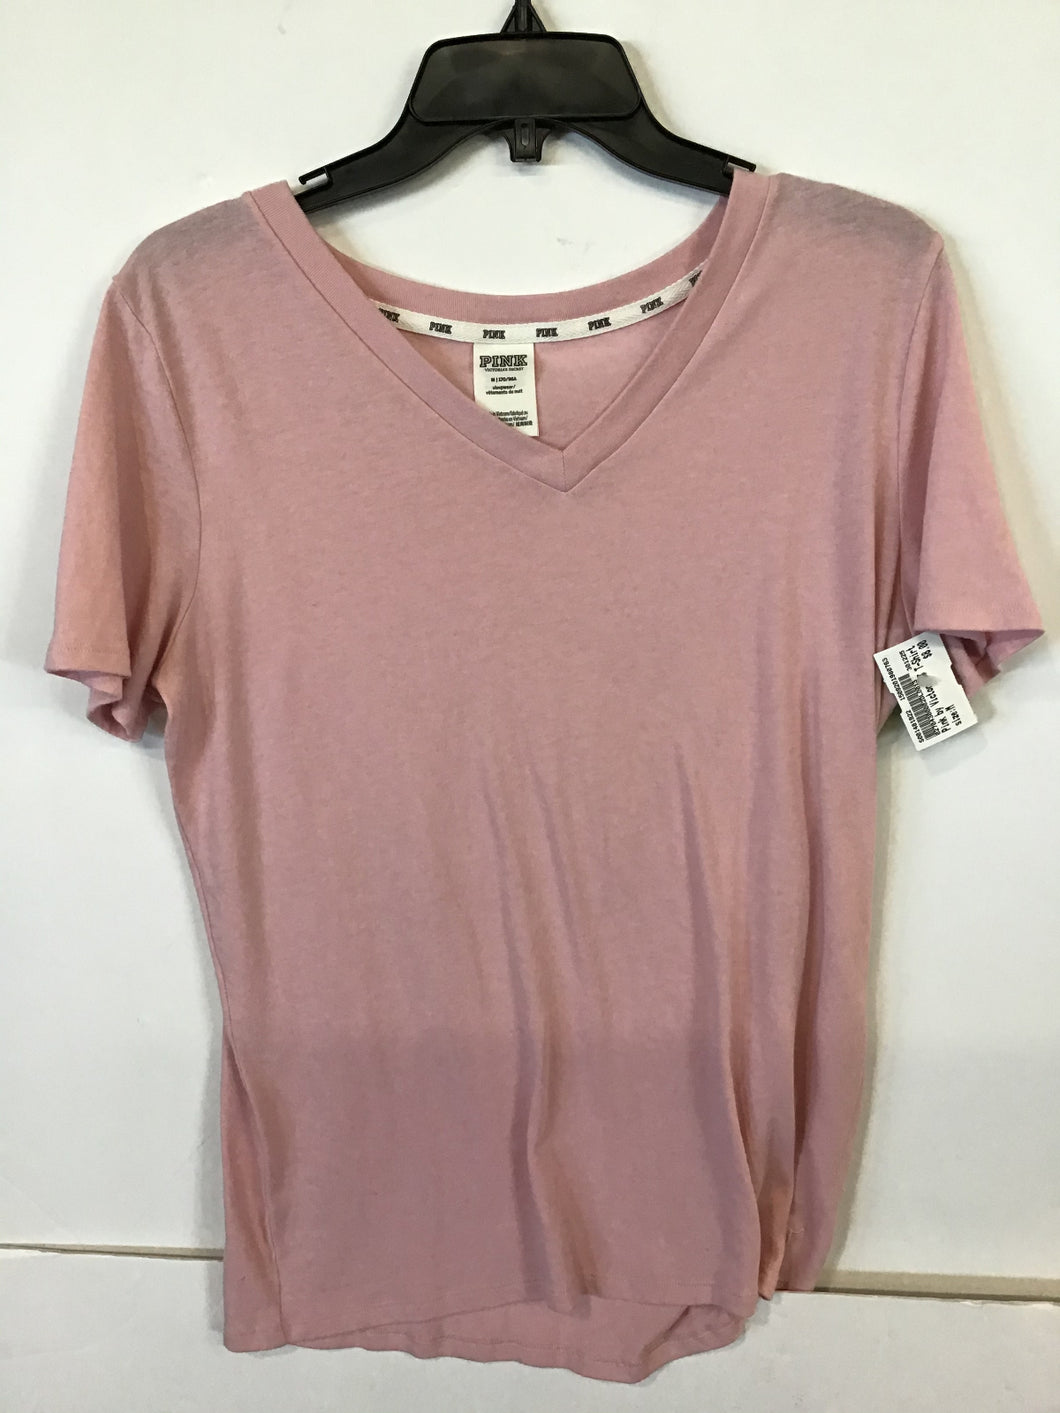 Pink by Victoria's Secret Womens Tops, Sz. M